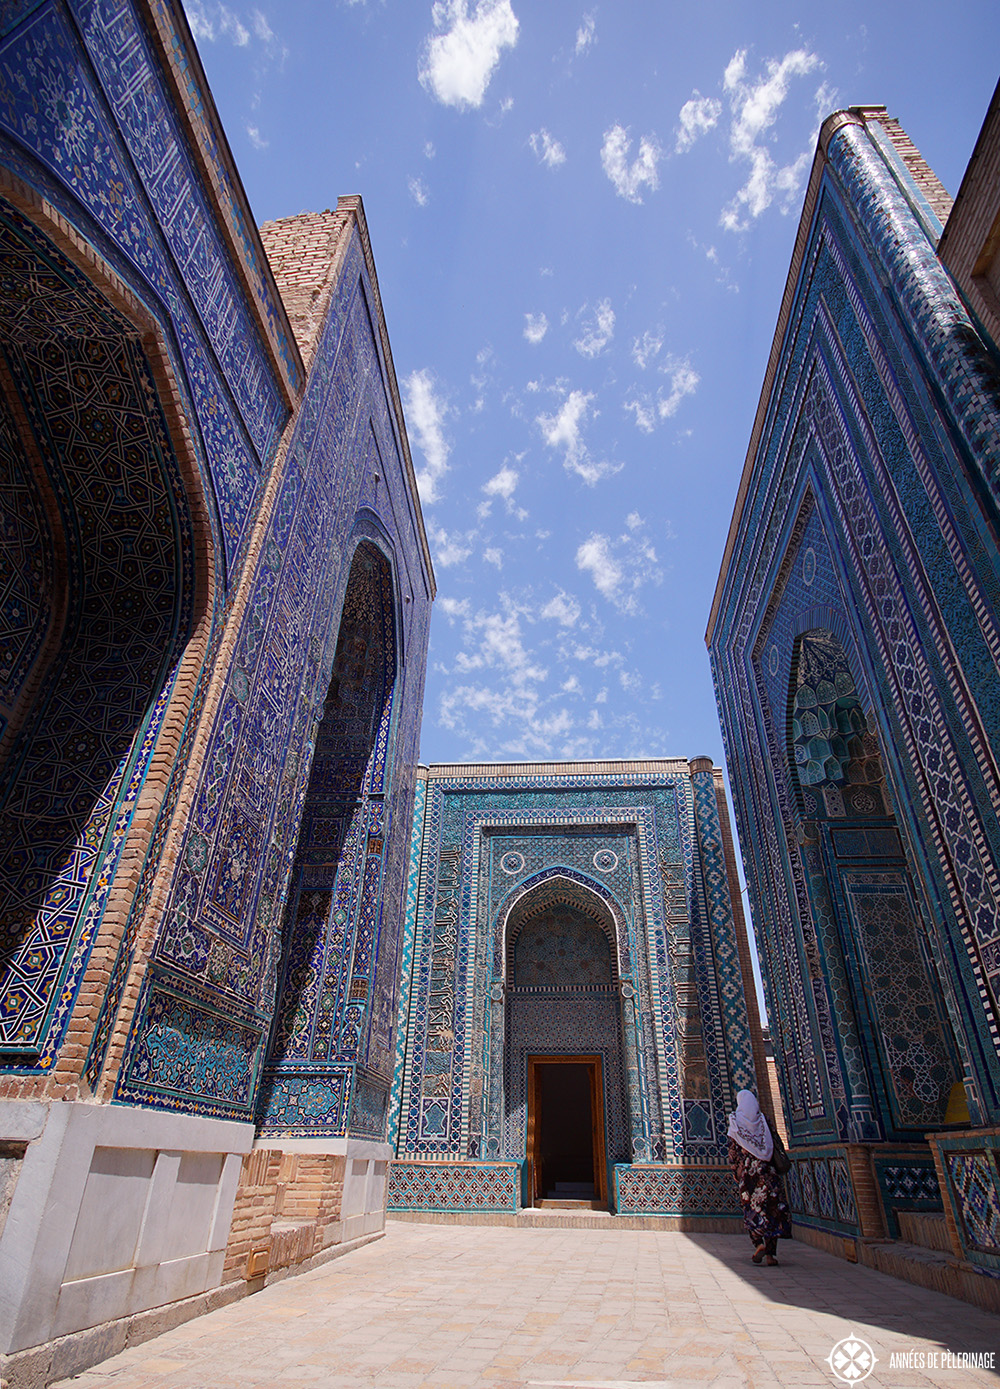 The Shah-i-Zinda necropolis in Samarkand, Uzbekistan - certainly one of the best things to see in the city